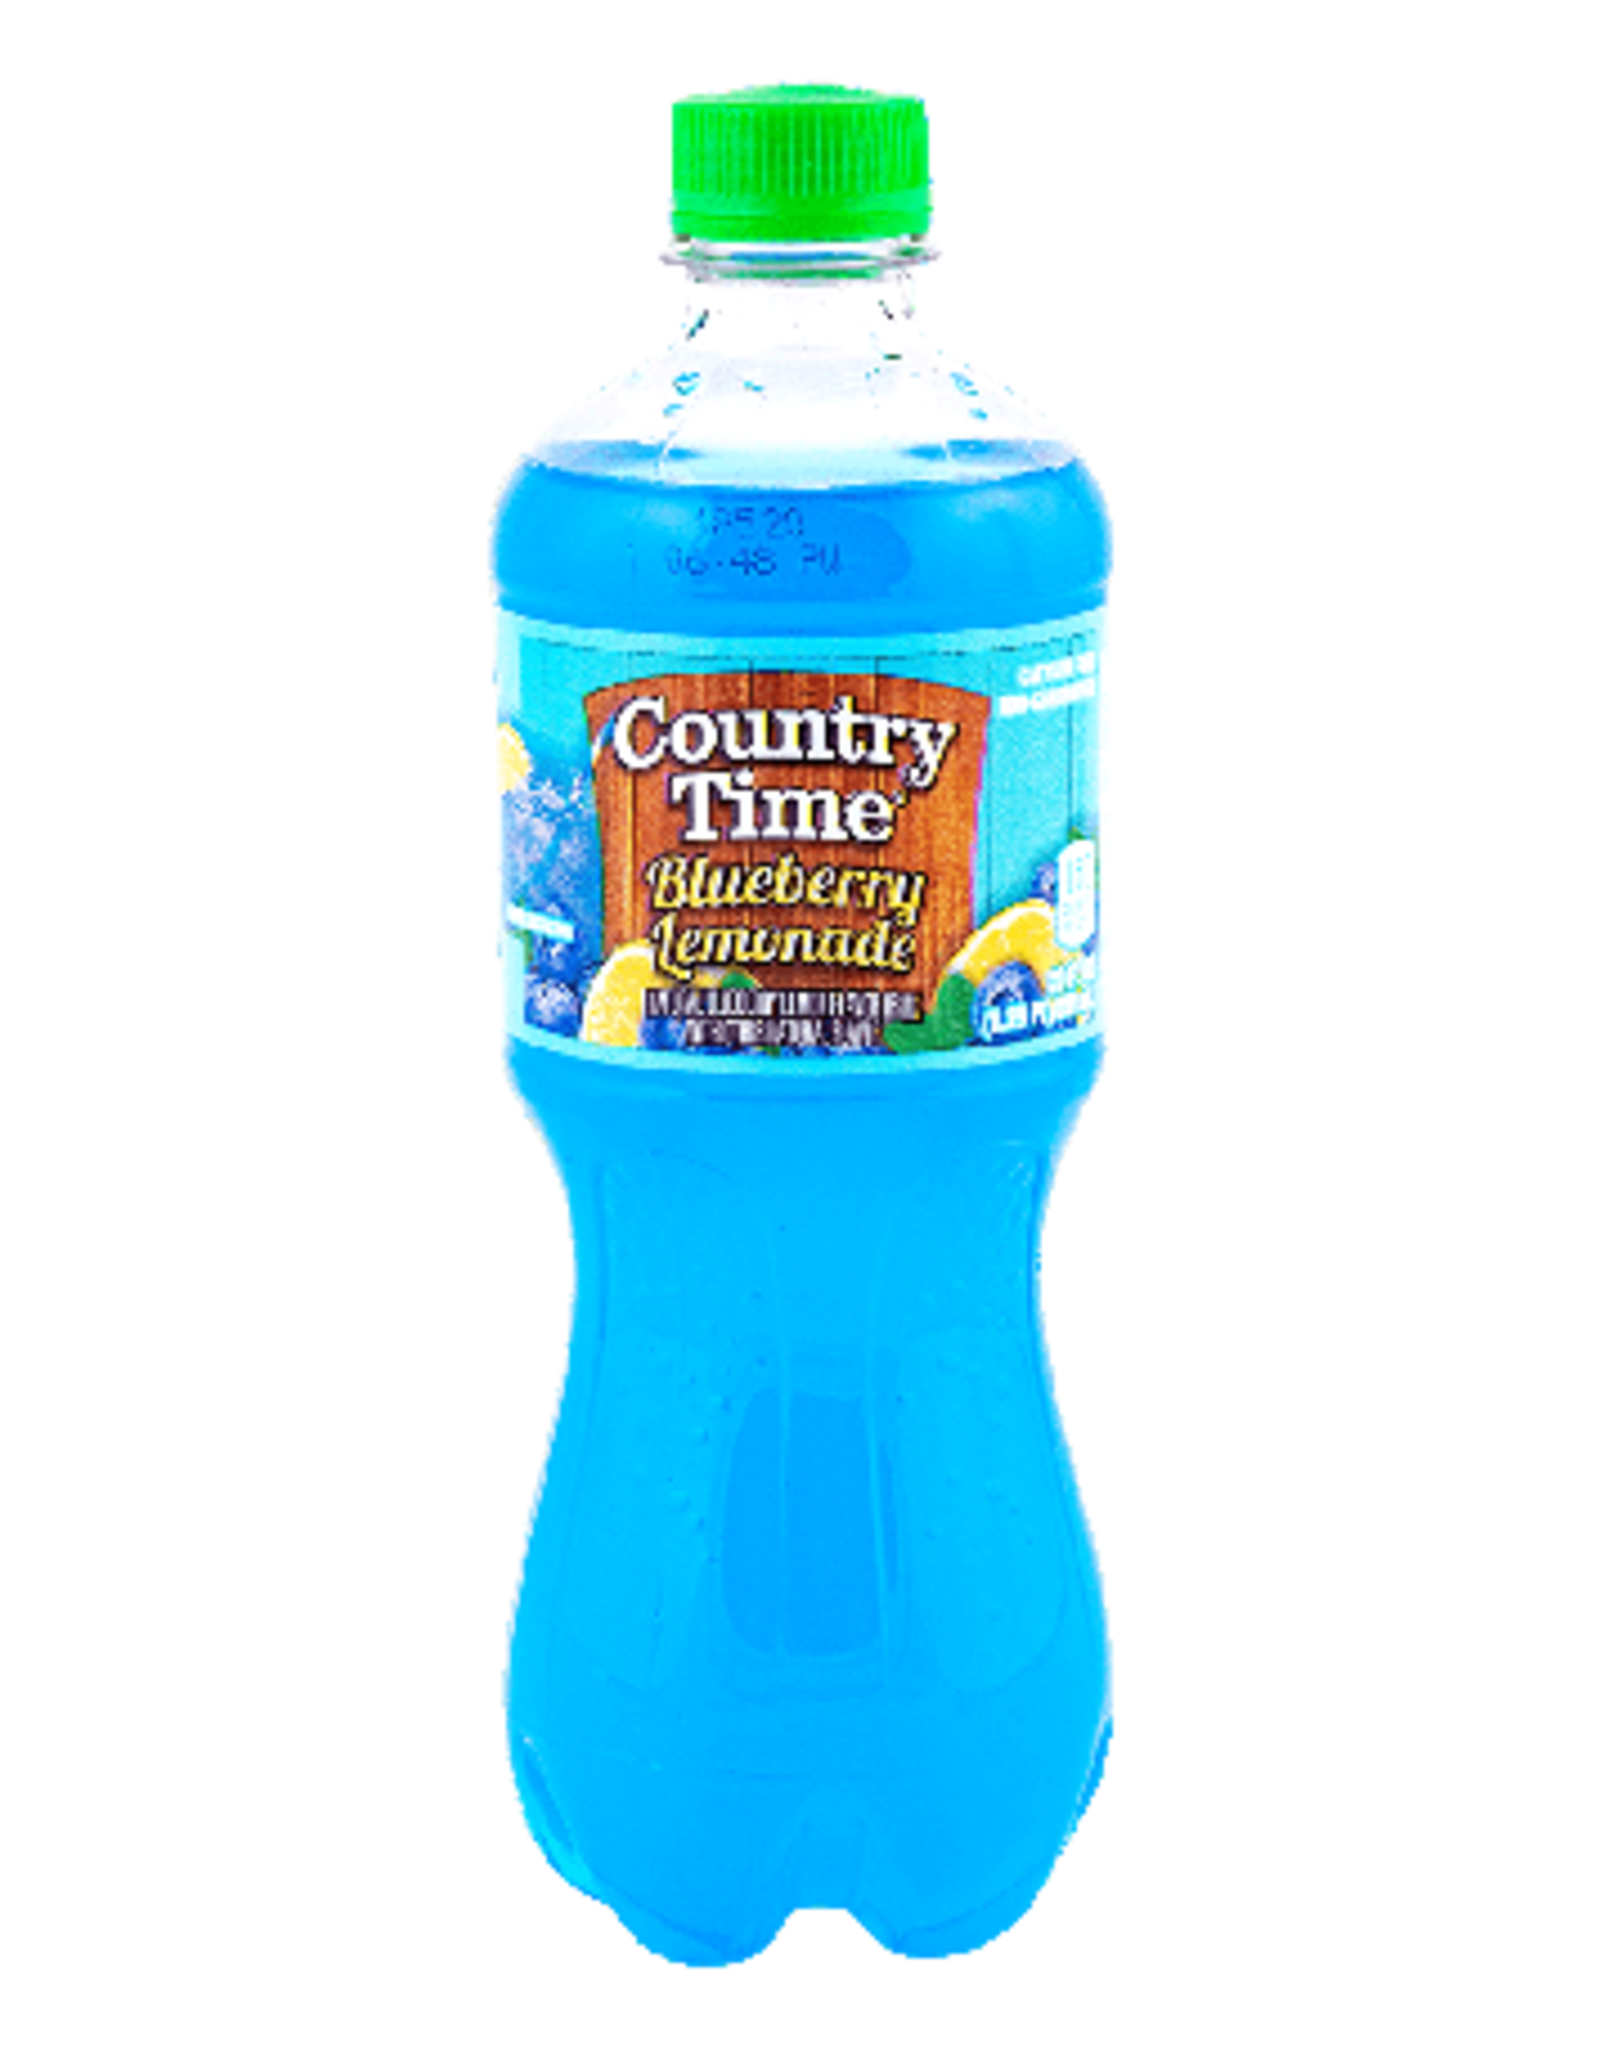 Country Time Blueberry Lemonade